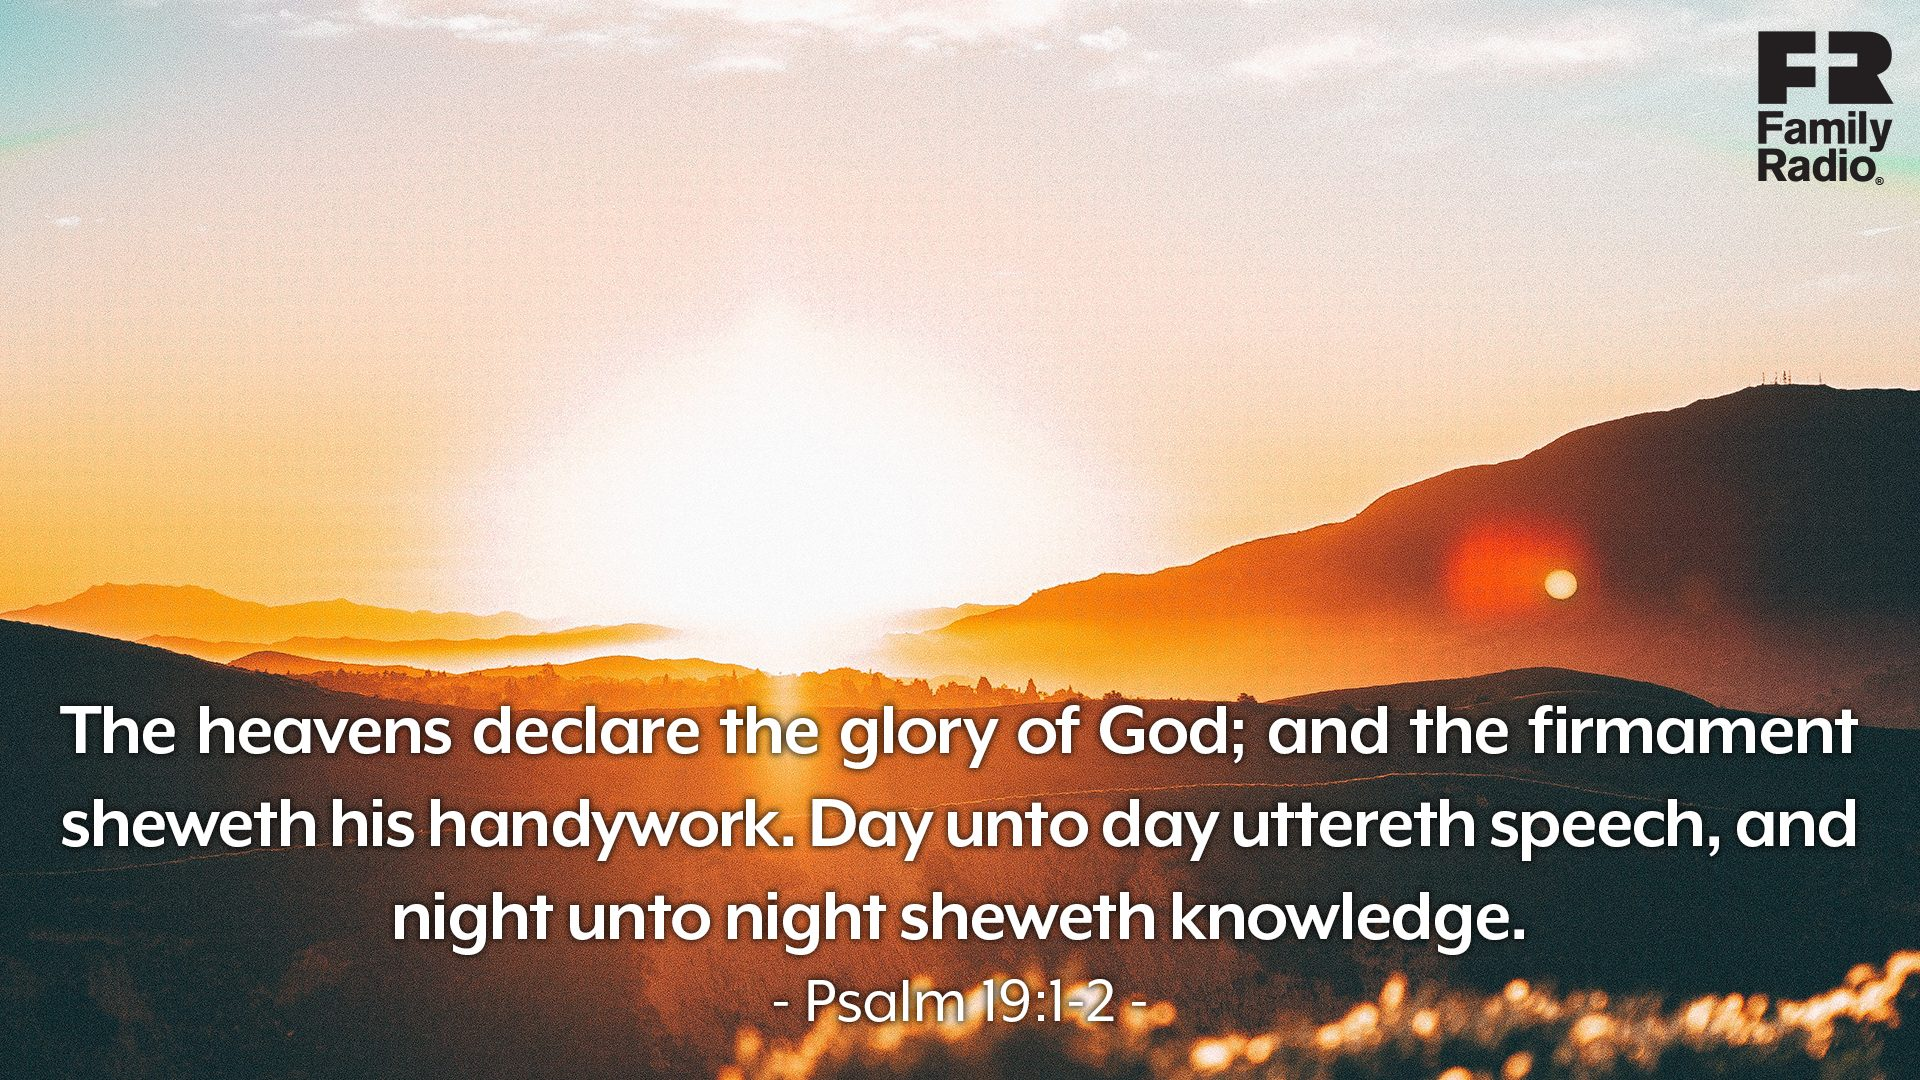 """The heavens declare the glory of God; and the firmament sheweth his handywork. Day unto day uttereth speech, and night unto night sheweth knowledge."""